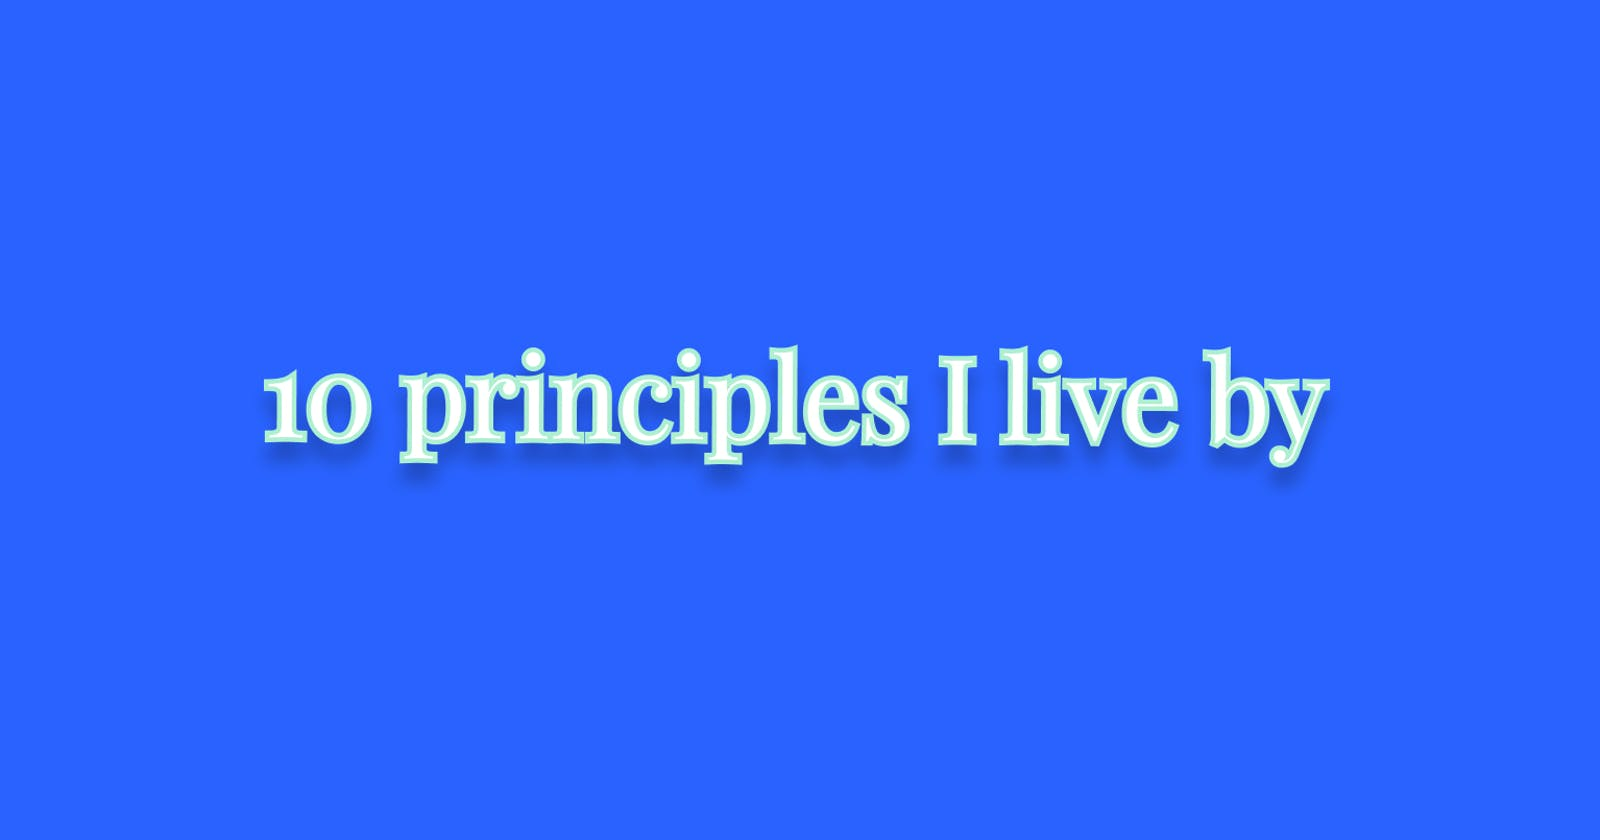 10 principles I live by